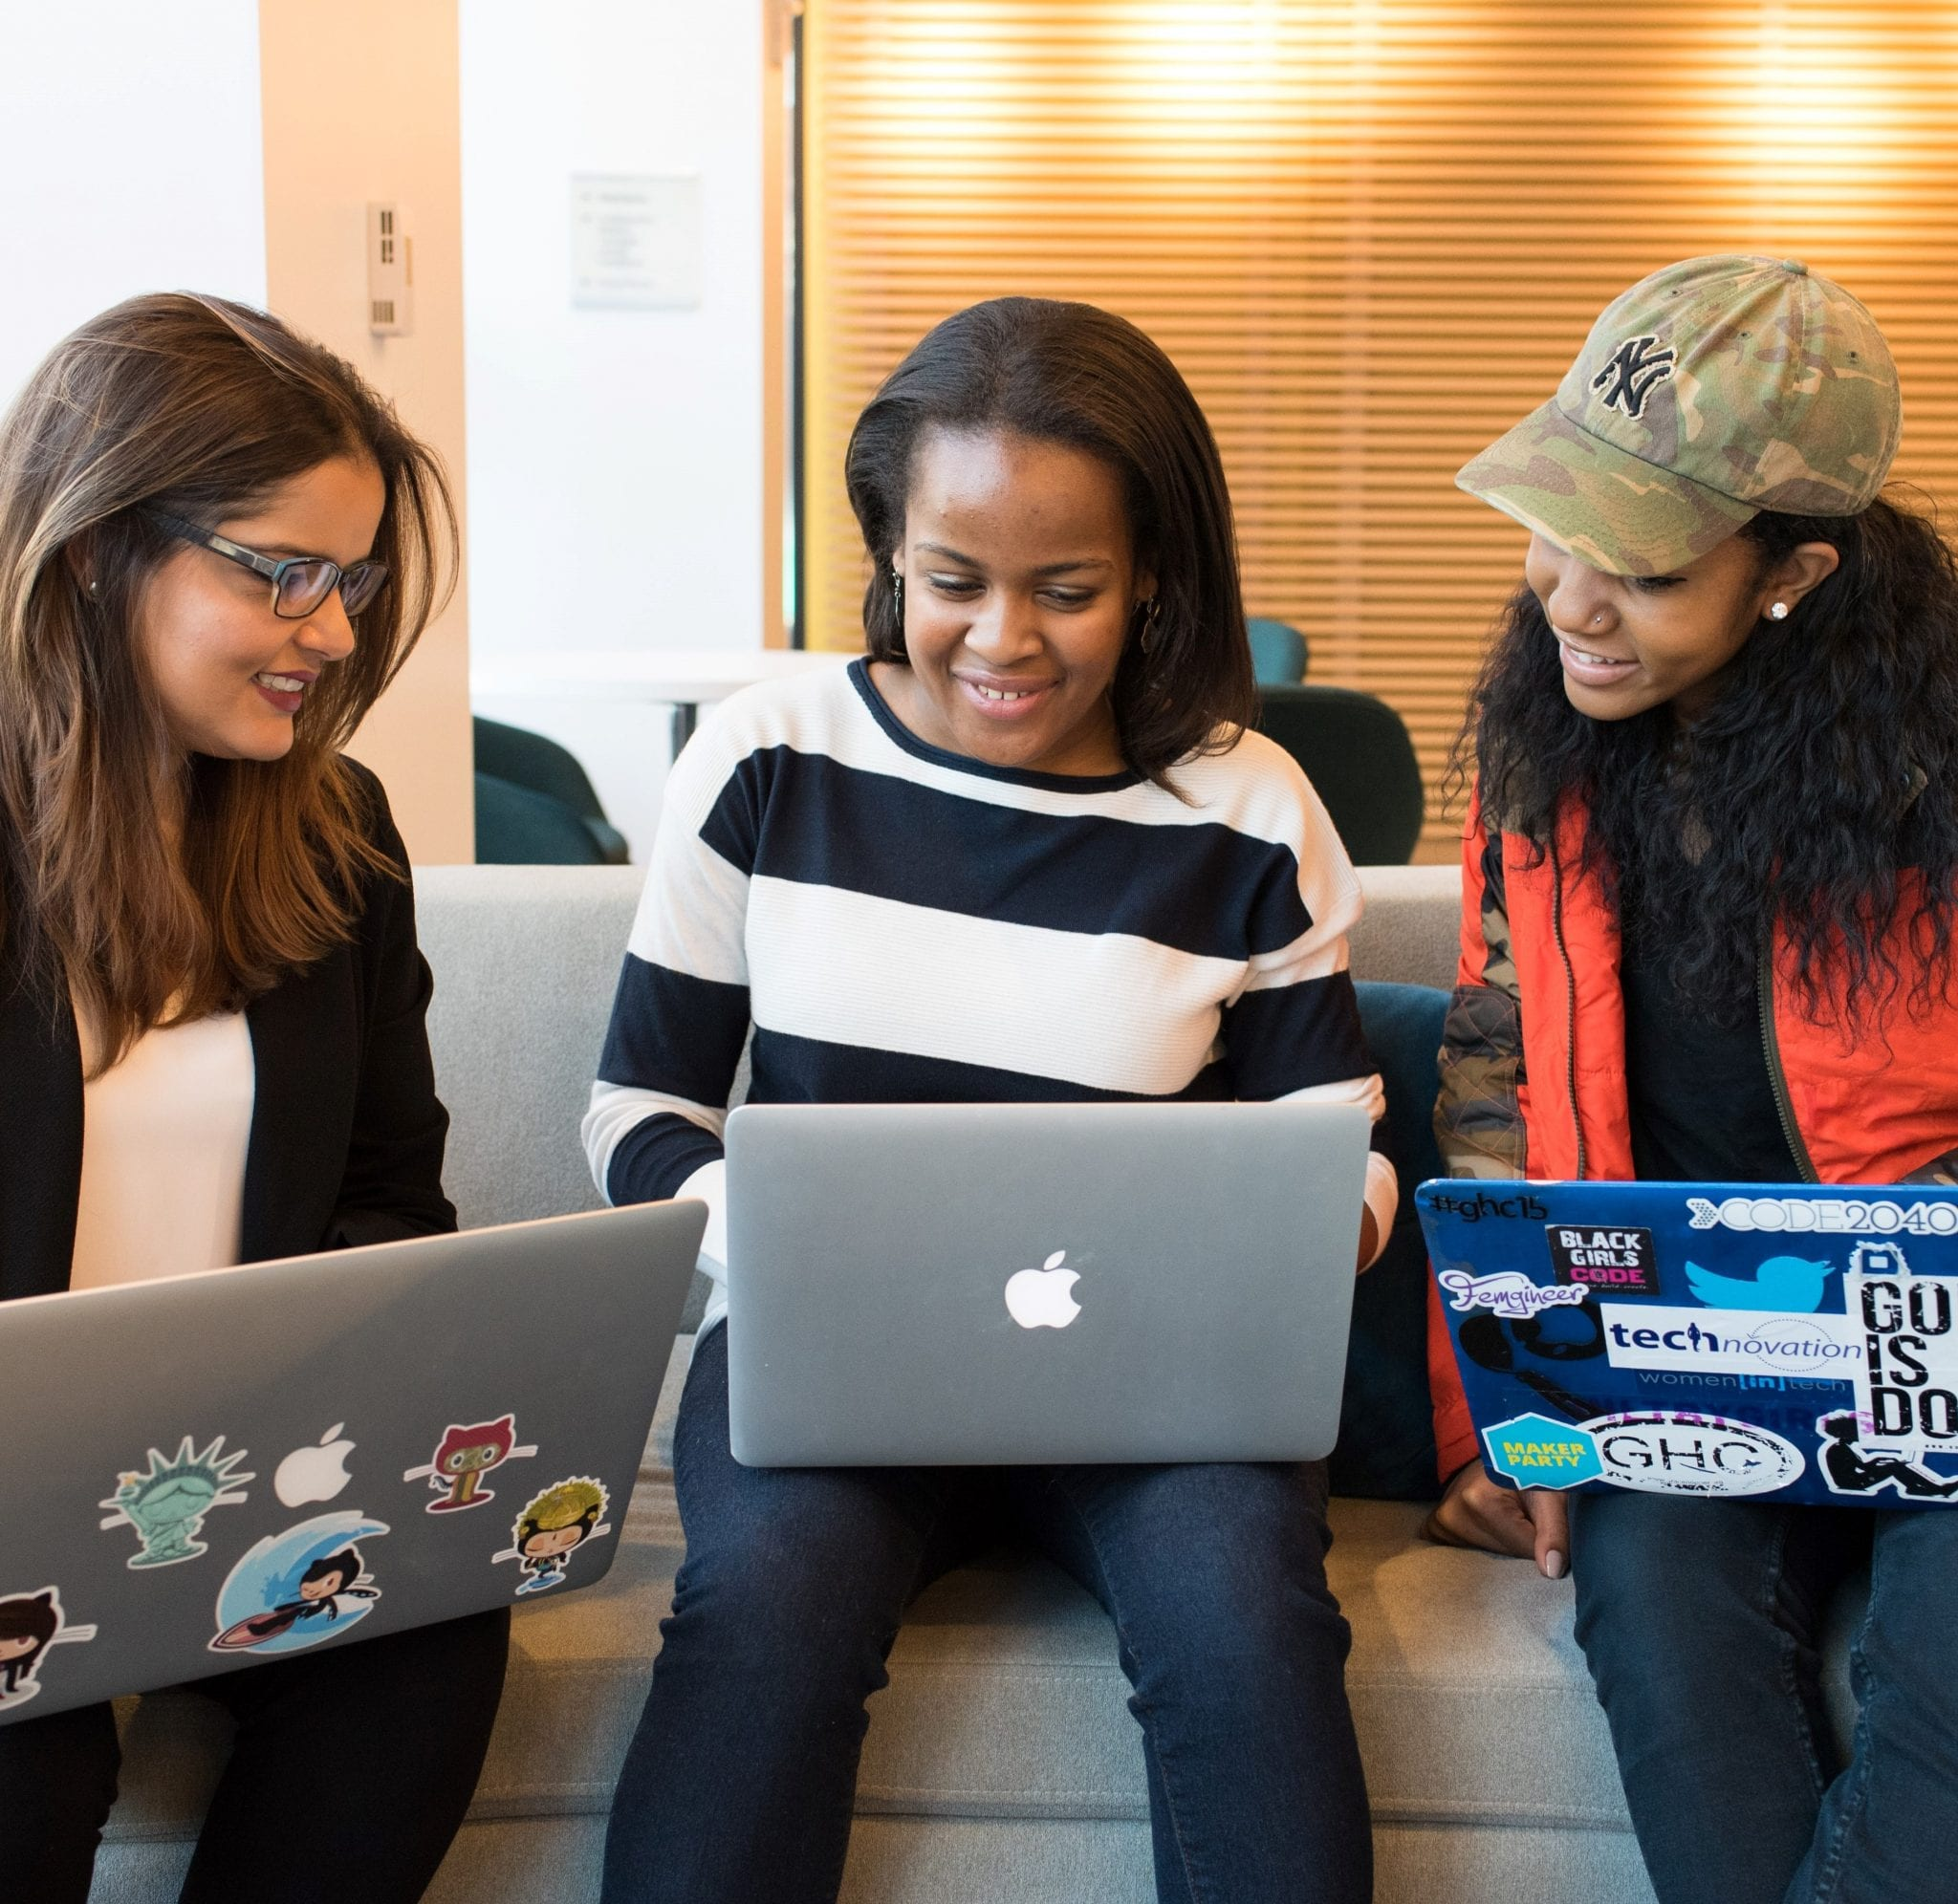 Competency-based education used by three women on computer